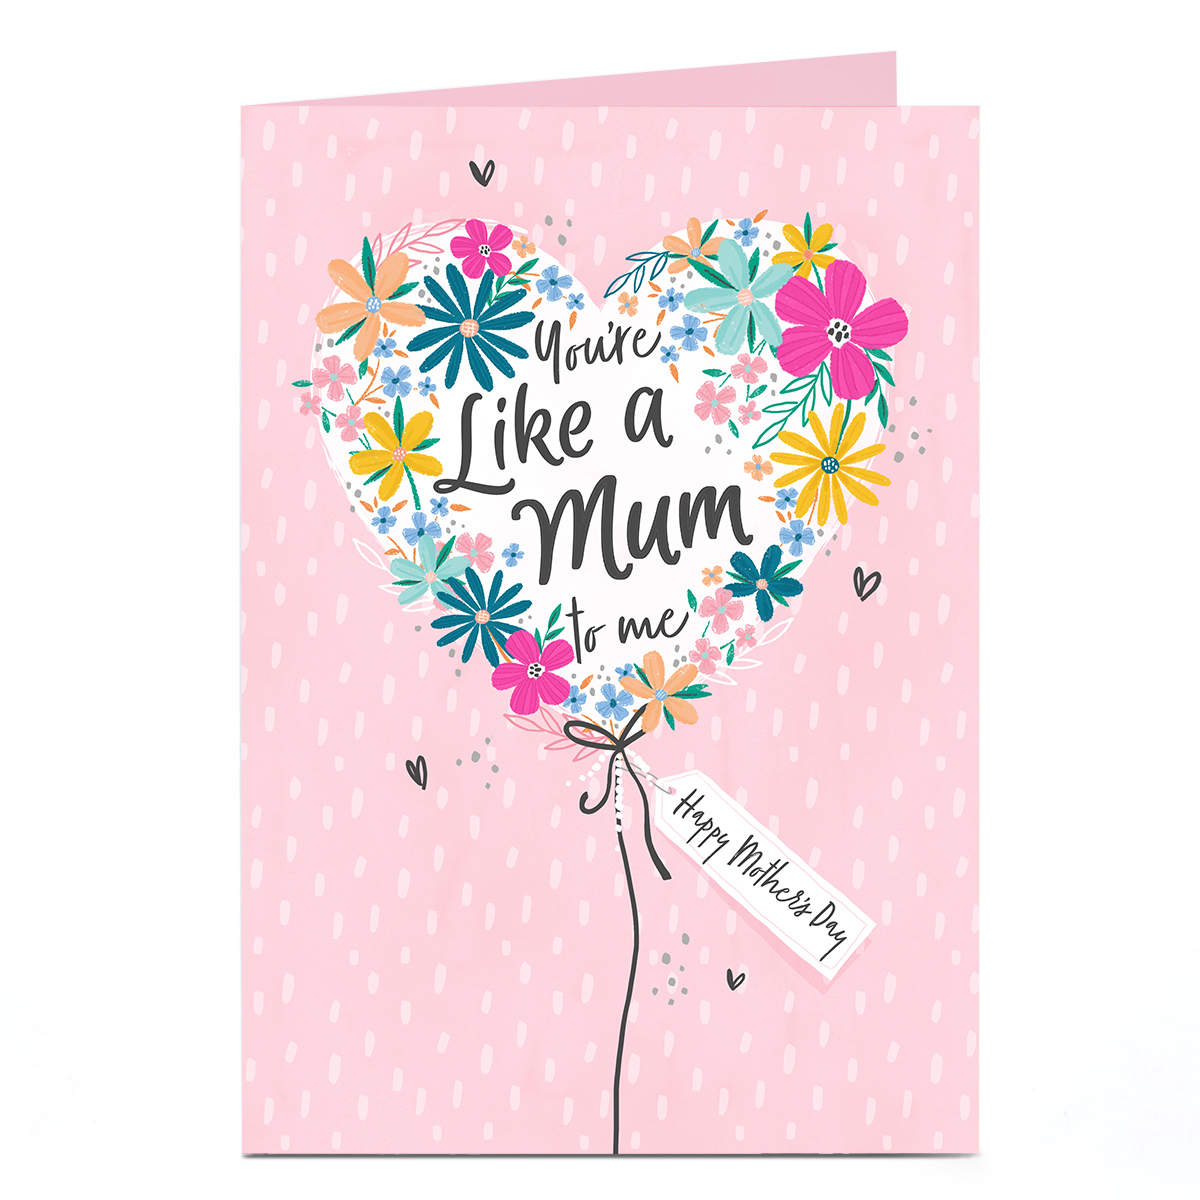 Personalised Mother's Day Card - Like A Mum Heart Balloon